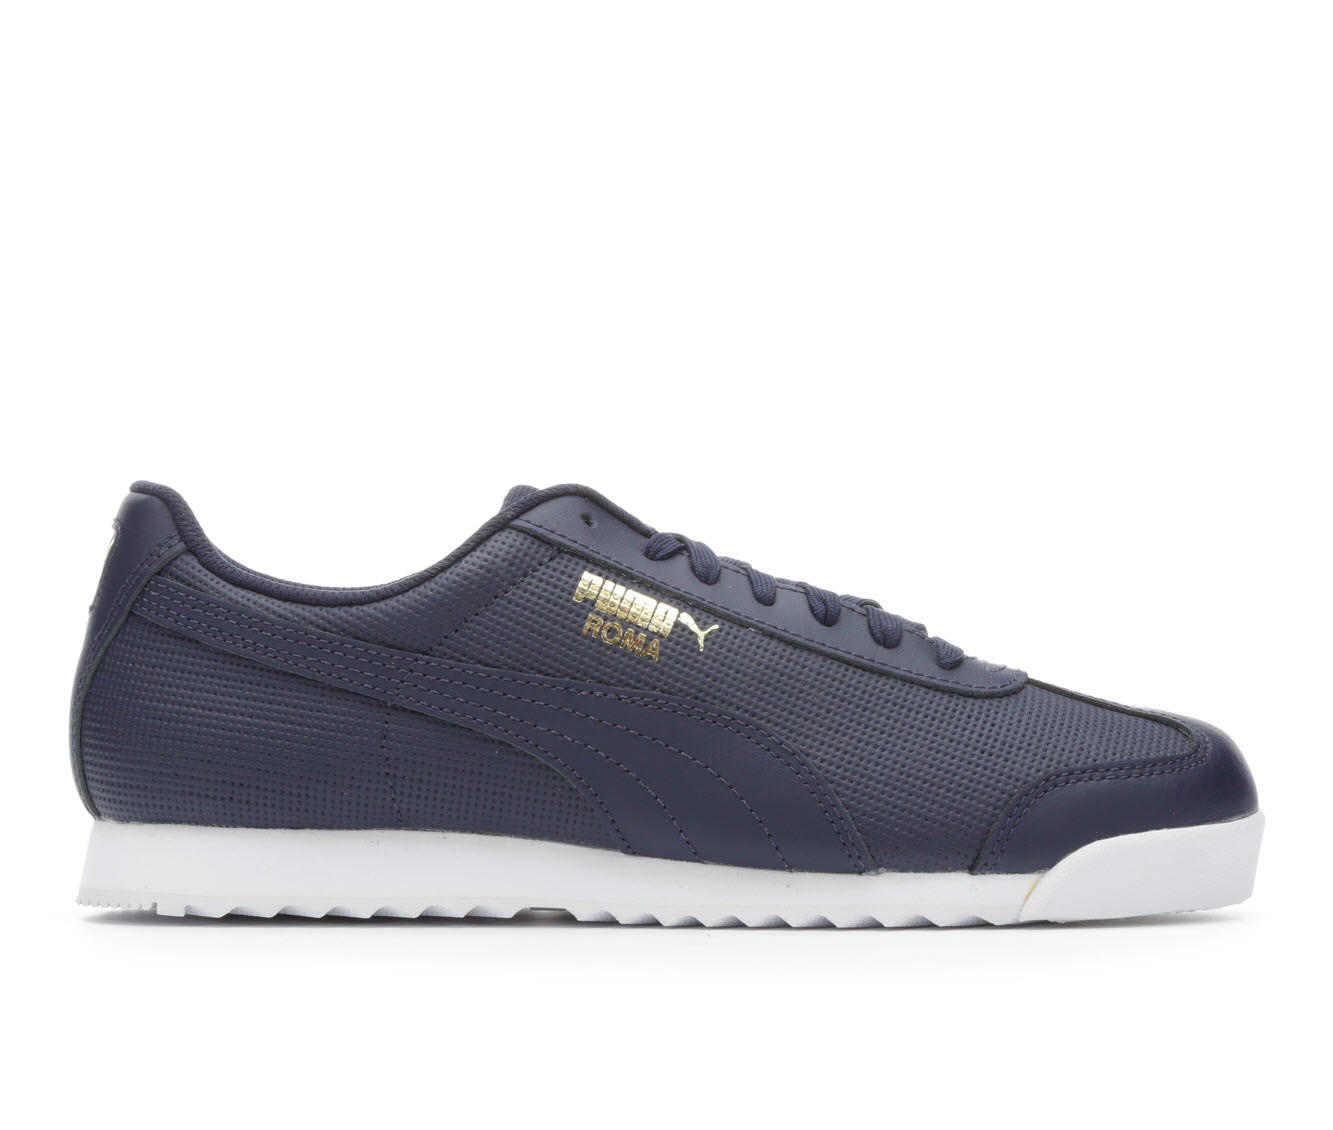 Men's Puma Roma Perf Sneakers (Blue - Size 8.5) 1660306